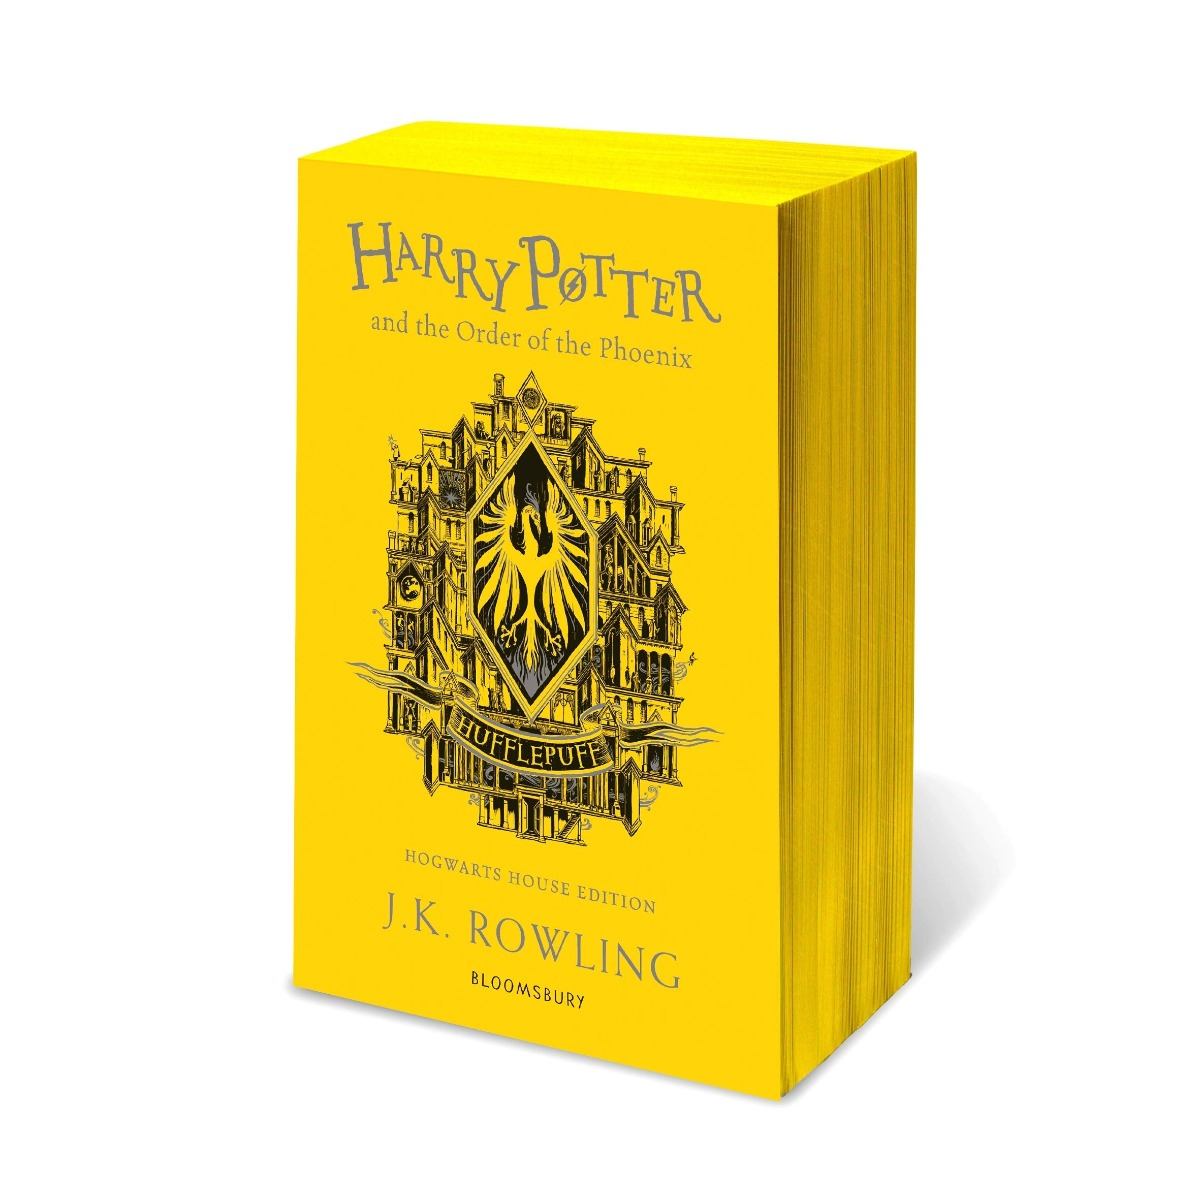 Harry Potter and the Order of the Phoenix - Hufflepuff Edition Paperback